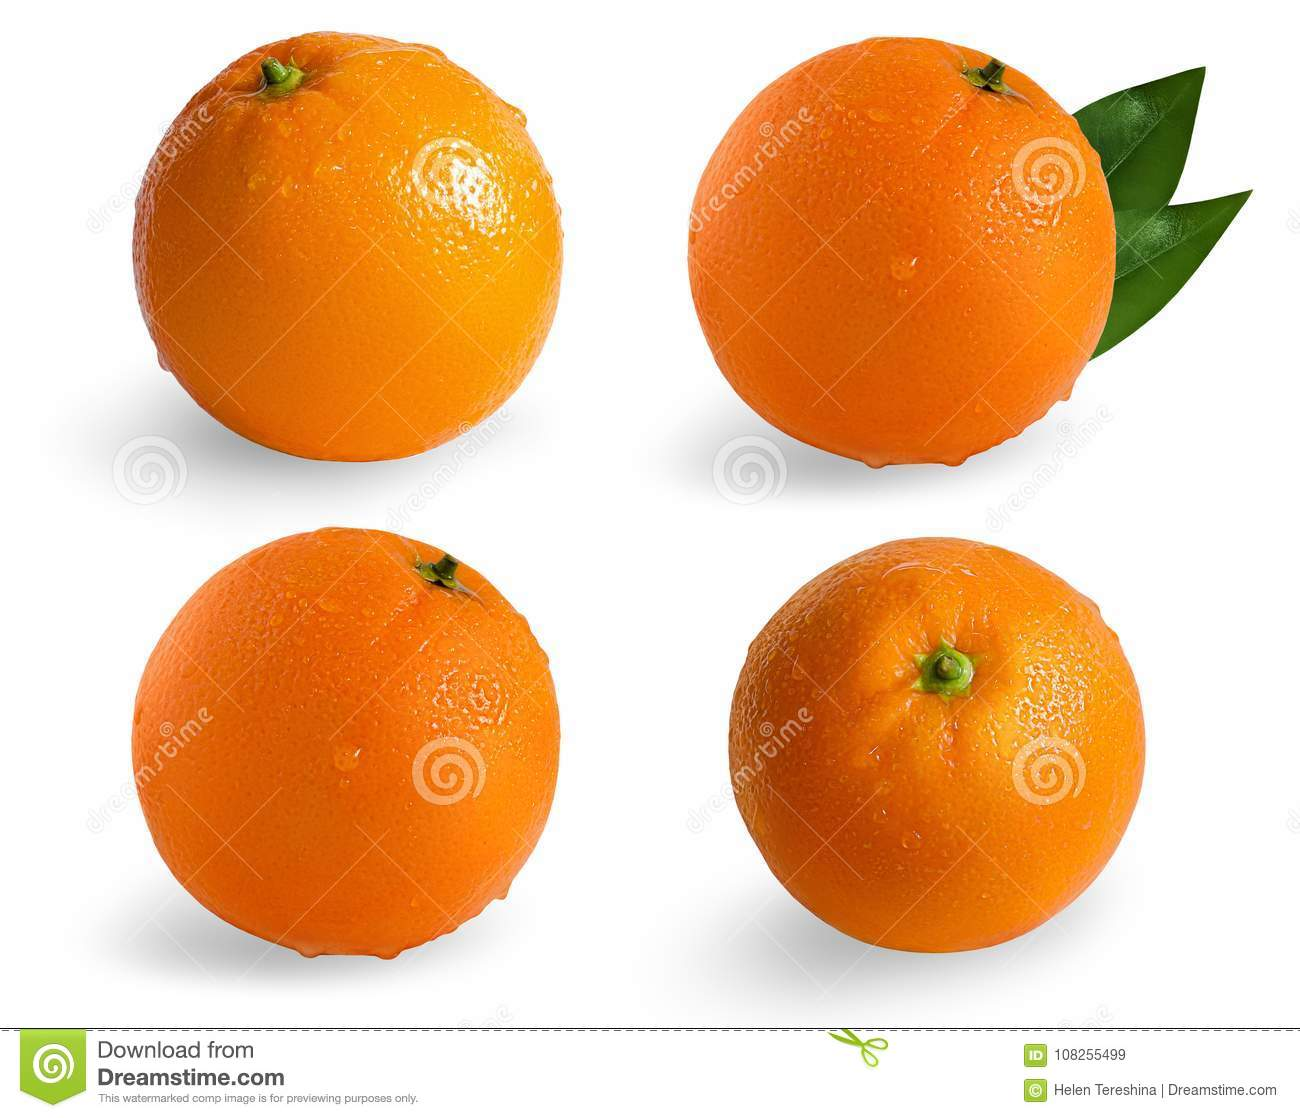 A collection of oranges isolated on white background.Wet orange isolated on white background.